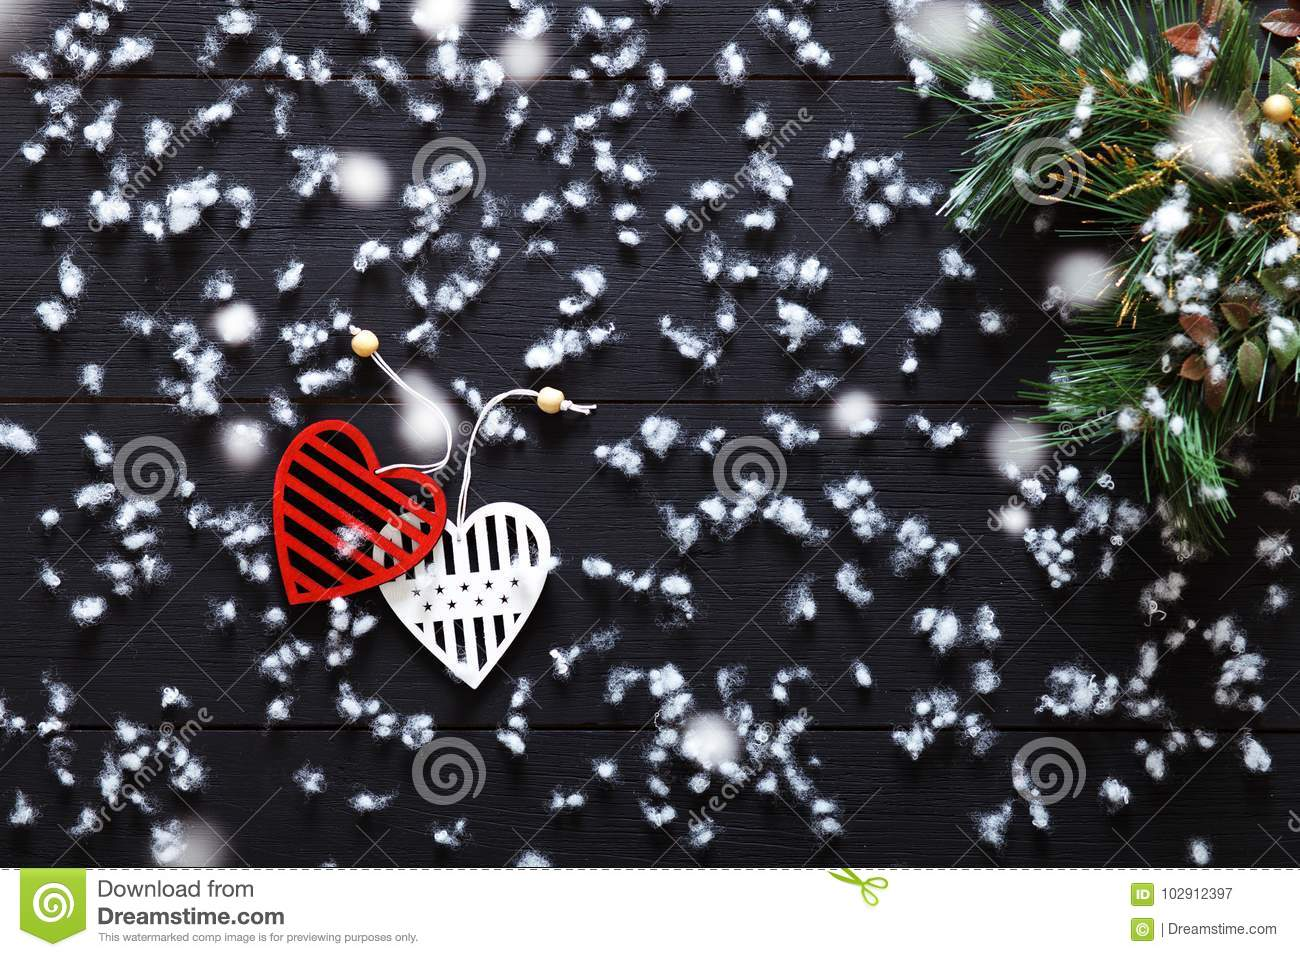 Hearts Of Christmas.Merry Christmas Decorations Snowflakes White Red Hearts